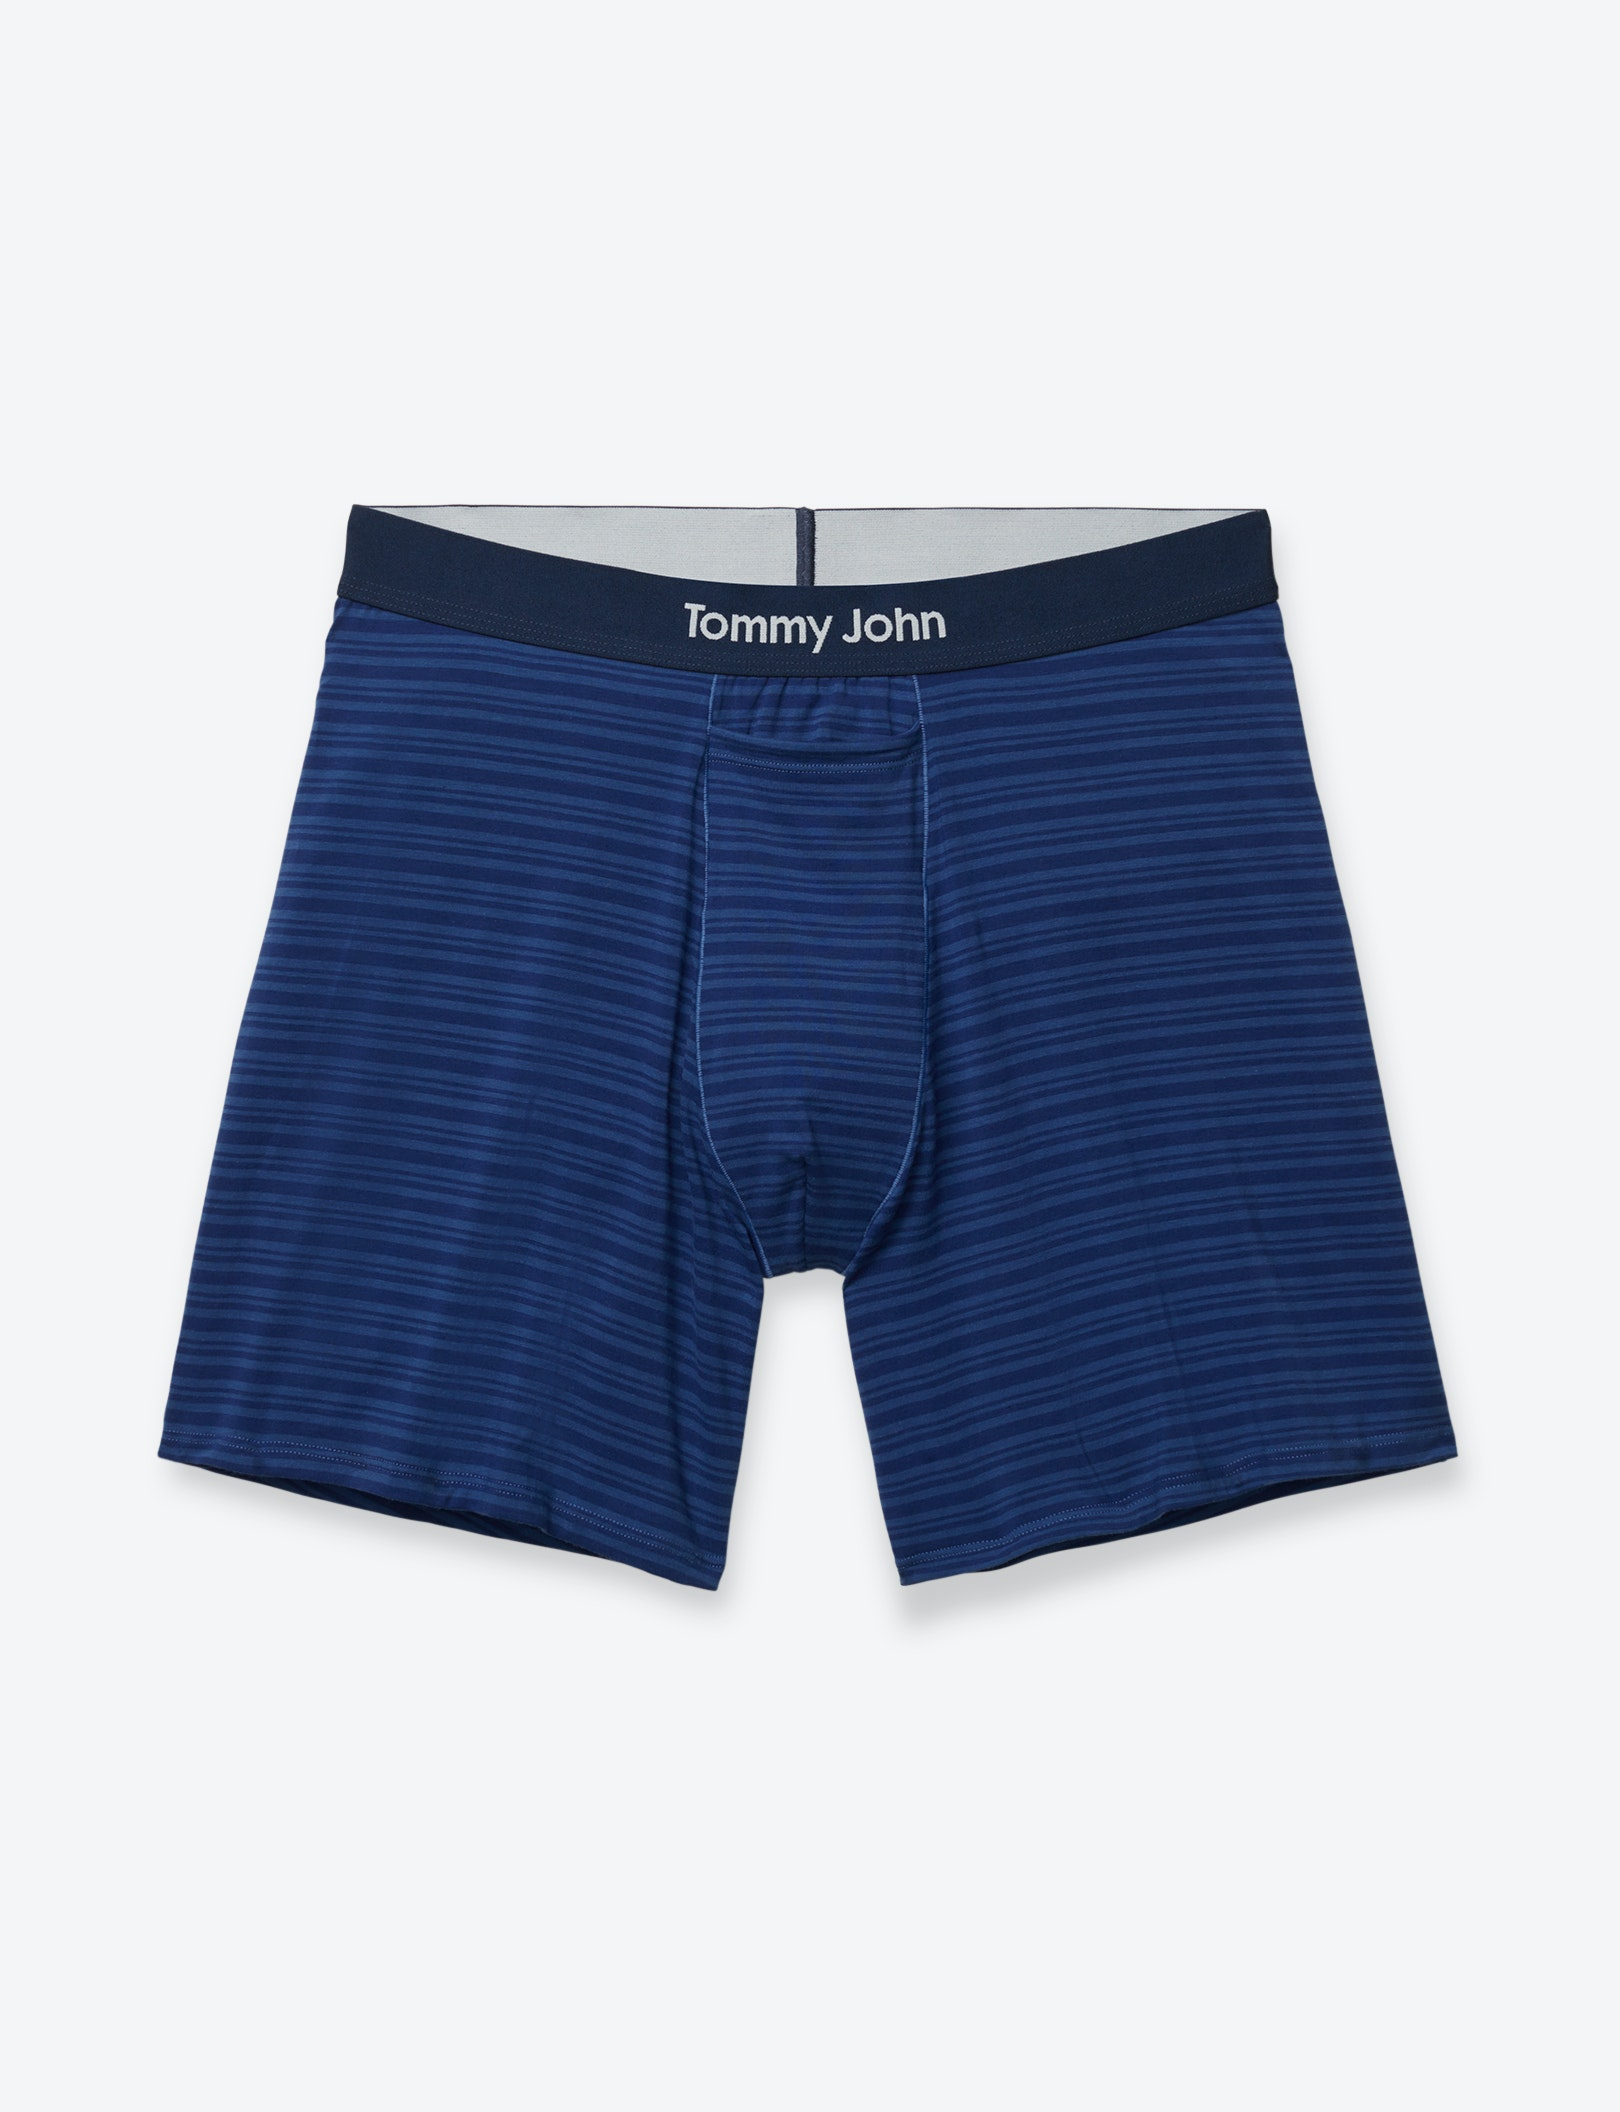 Image of Cool Cotton Mitch Stripe Relaxed Fit Boxer